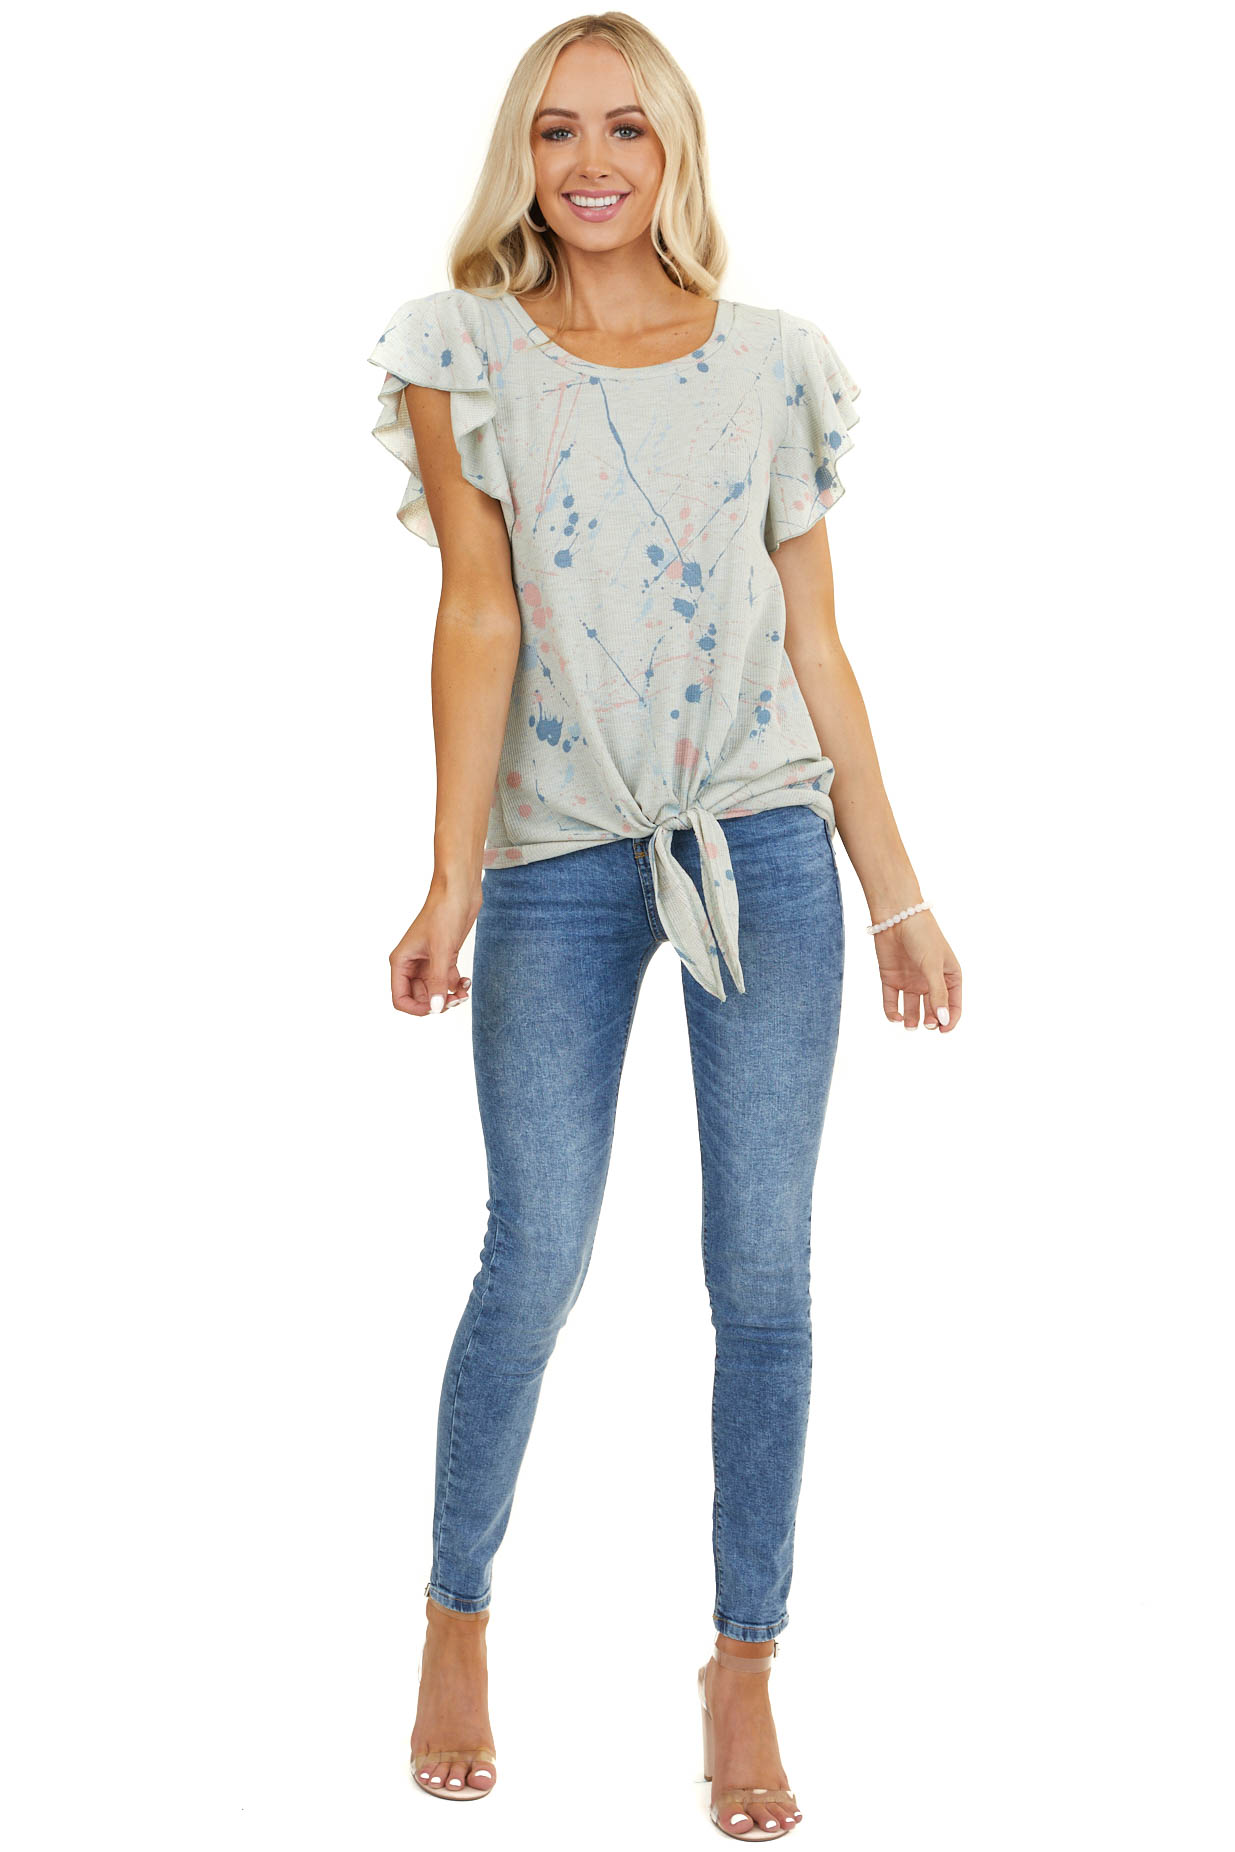 Dusty Sage Splatter Paint Top with Ruffle Sleeves and Tie